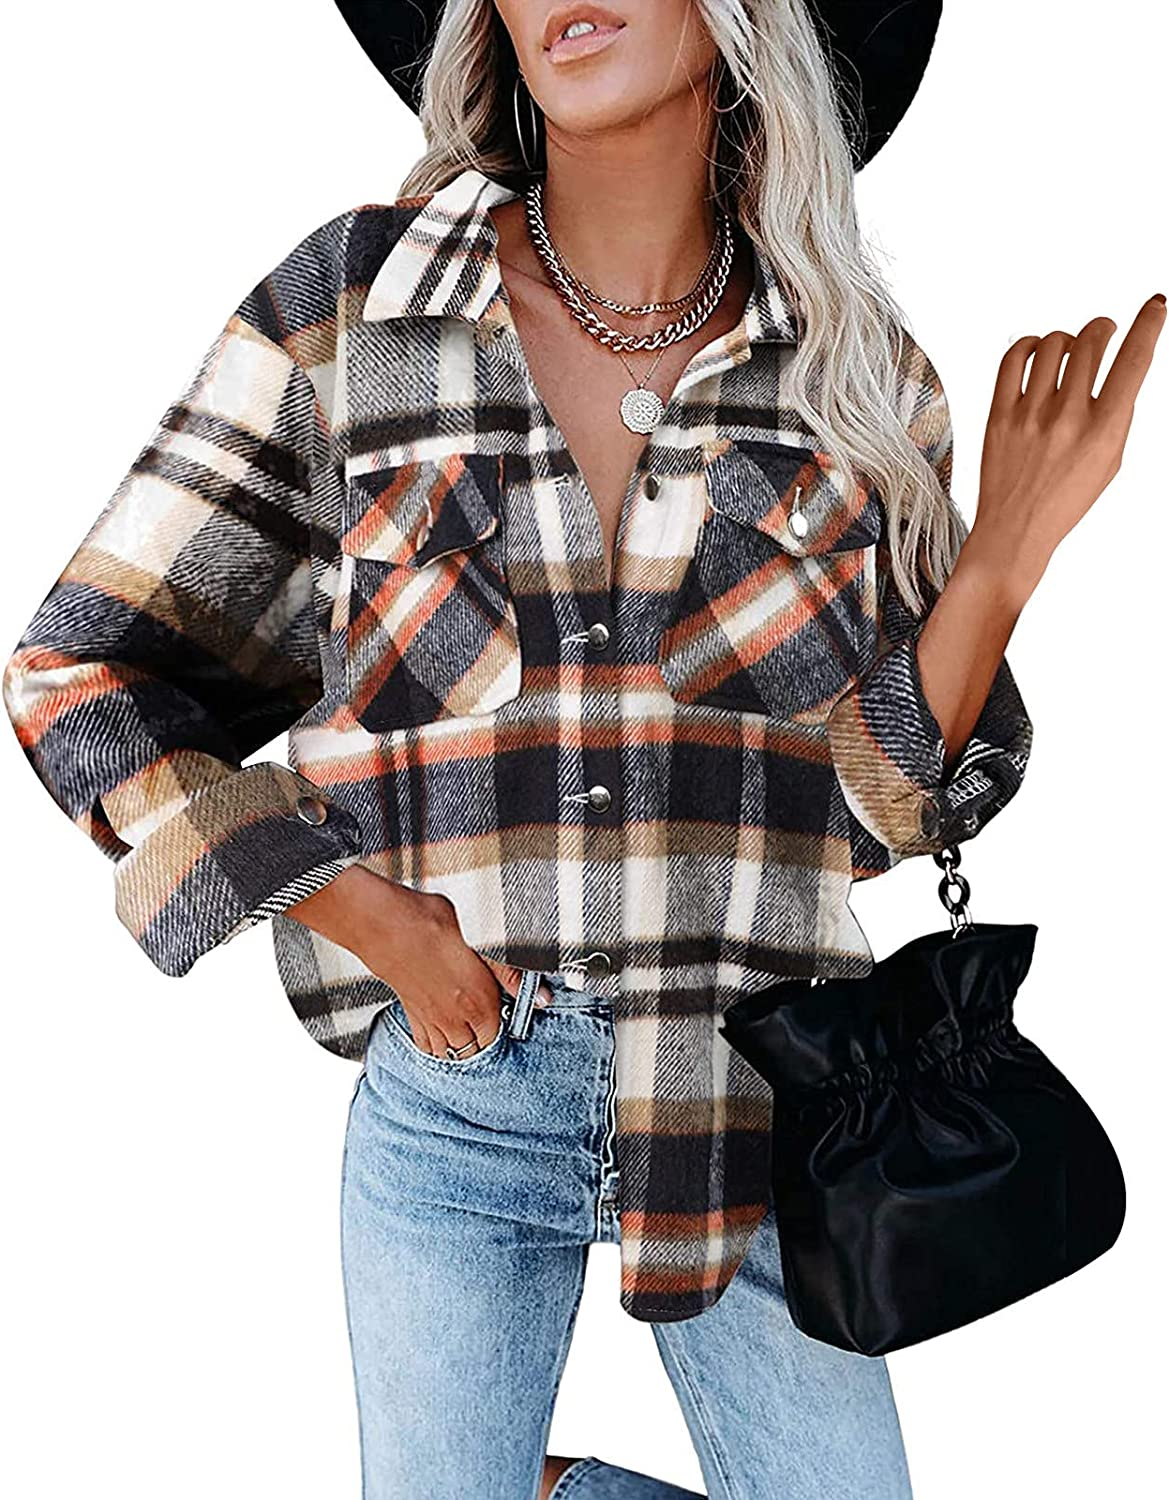 Lovor Women's Brushed Plaid Shirts Sleeve Sale Fashion Long Flannel But Lapel